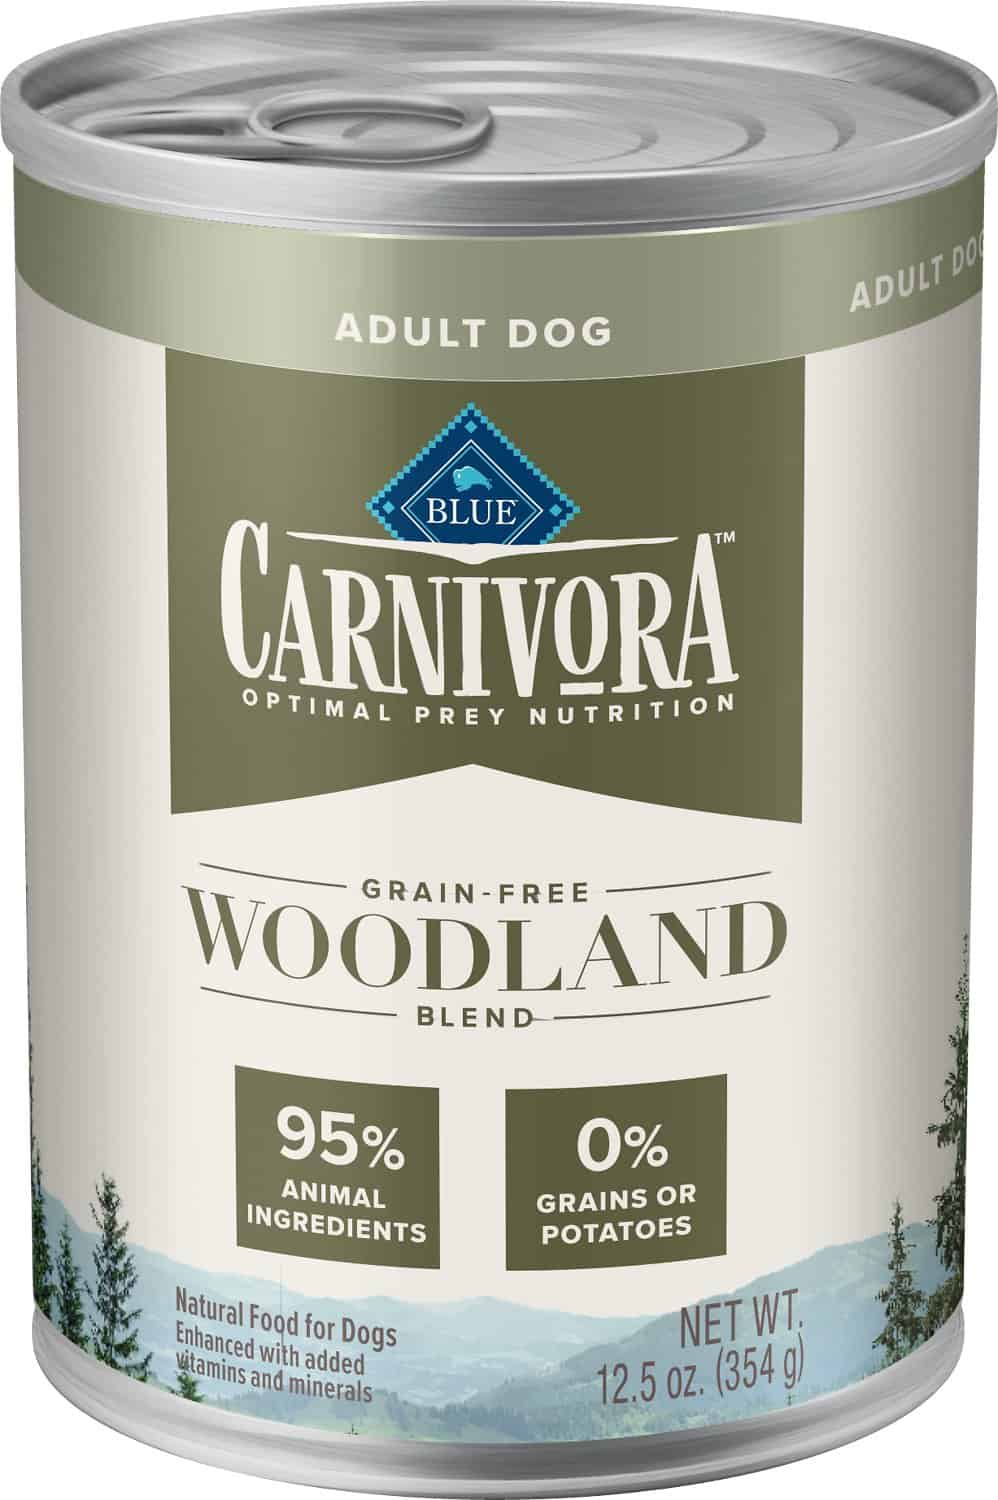 Blue Buffalo Carnivora Review 2021: The Pea & Potato Free Dog Food Line 21